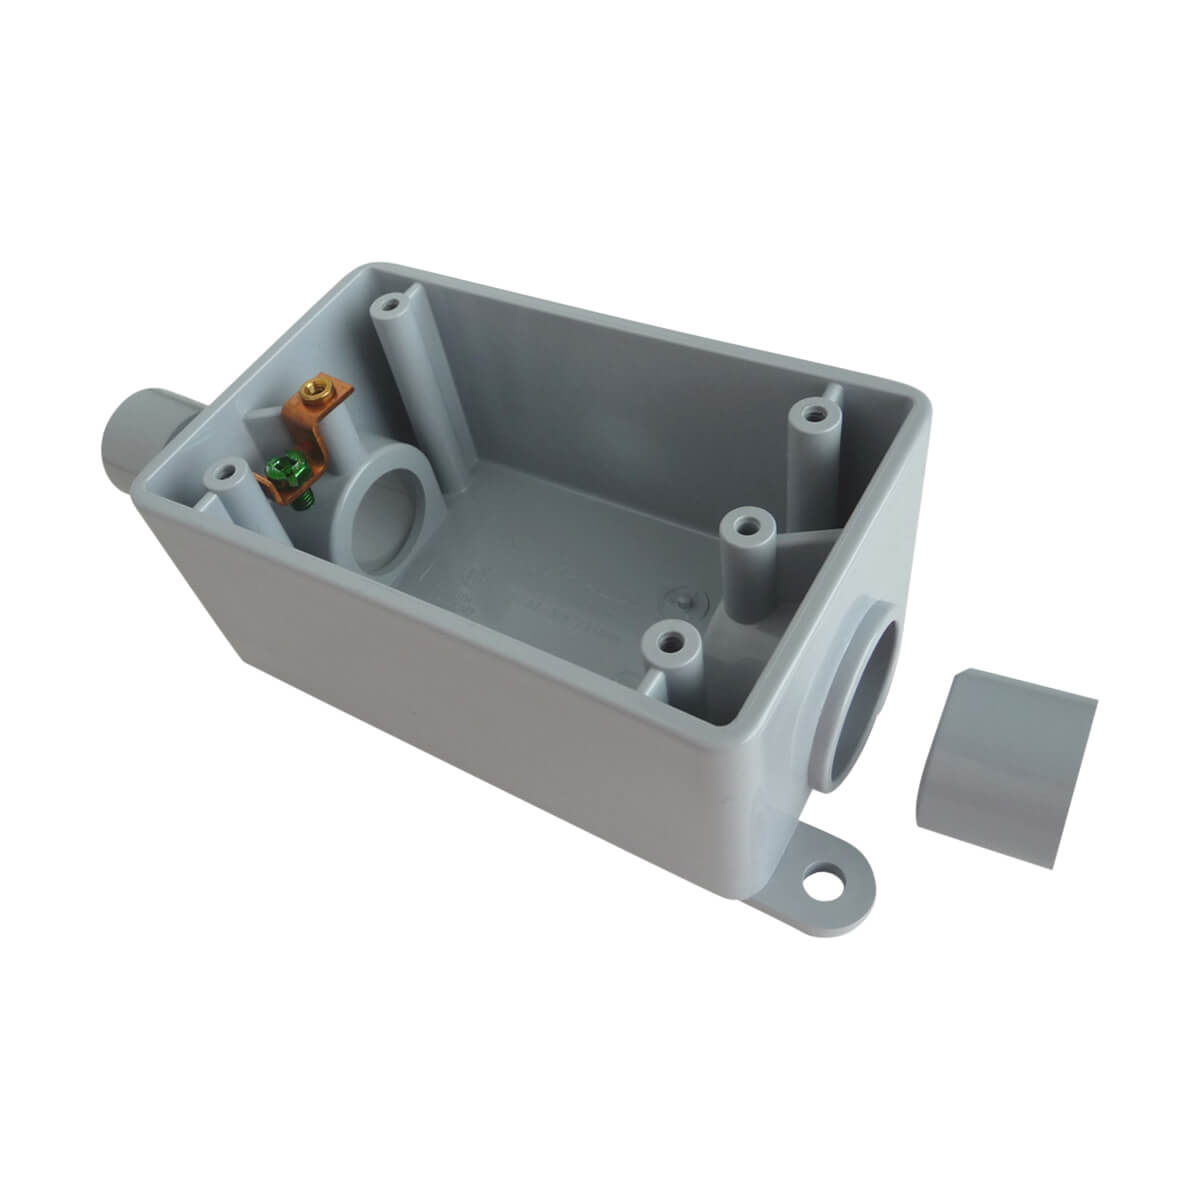 "PVC FSC 2-in-1 Single Gang Box (with reducer bushings) - Hub - 1/2"" and 3/4"""